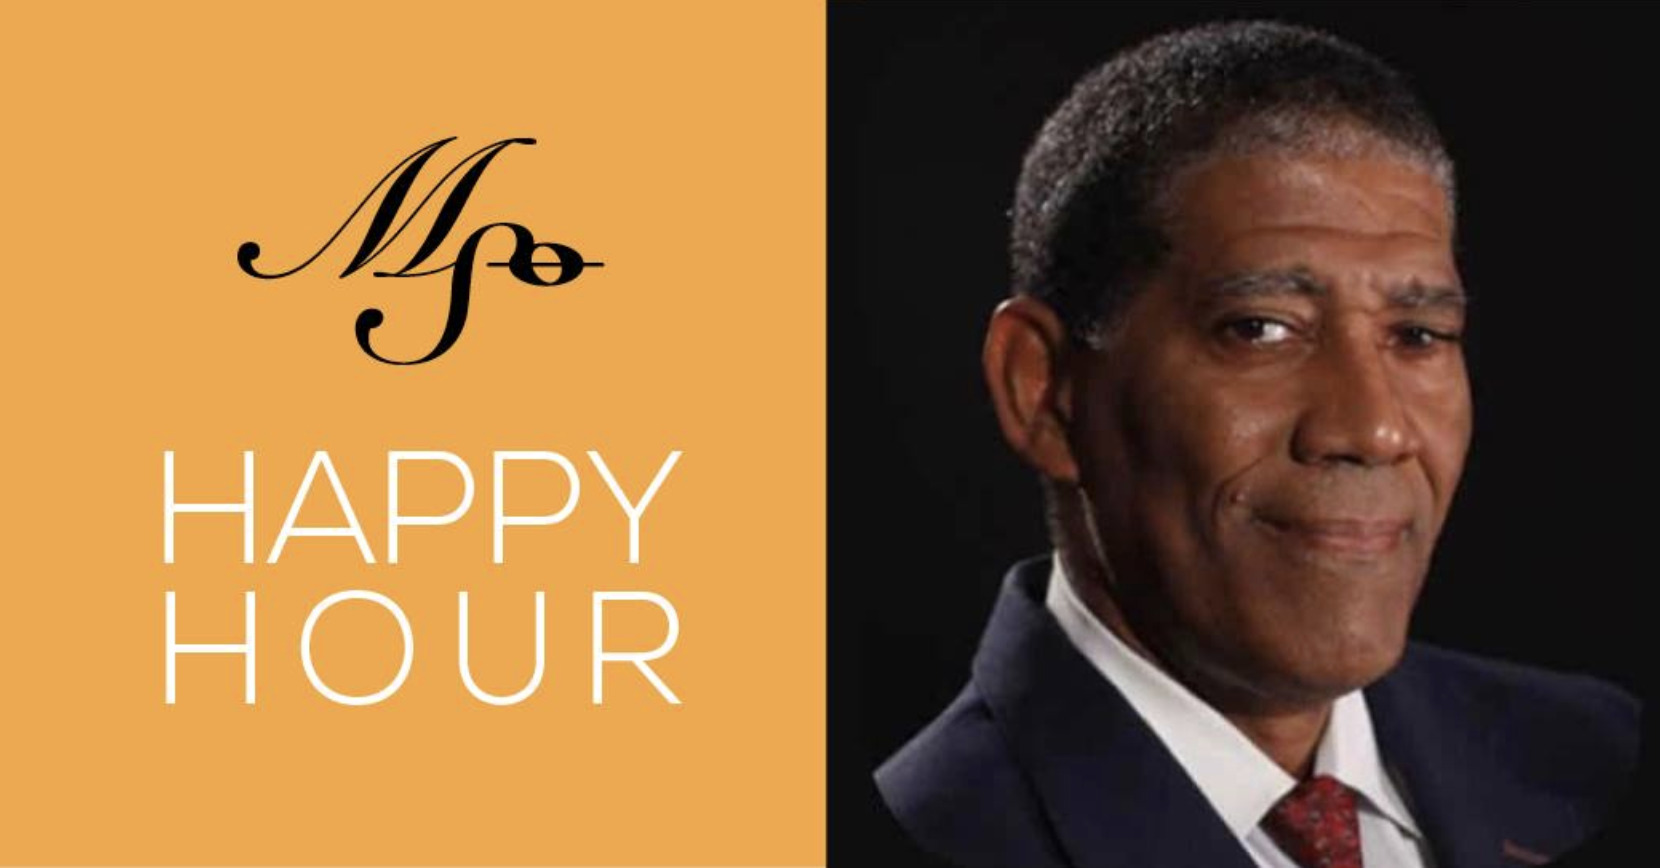 MSO Happy Hour with bass-baritone Laurence Albert